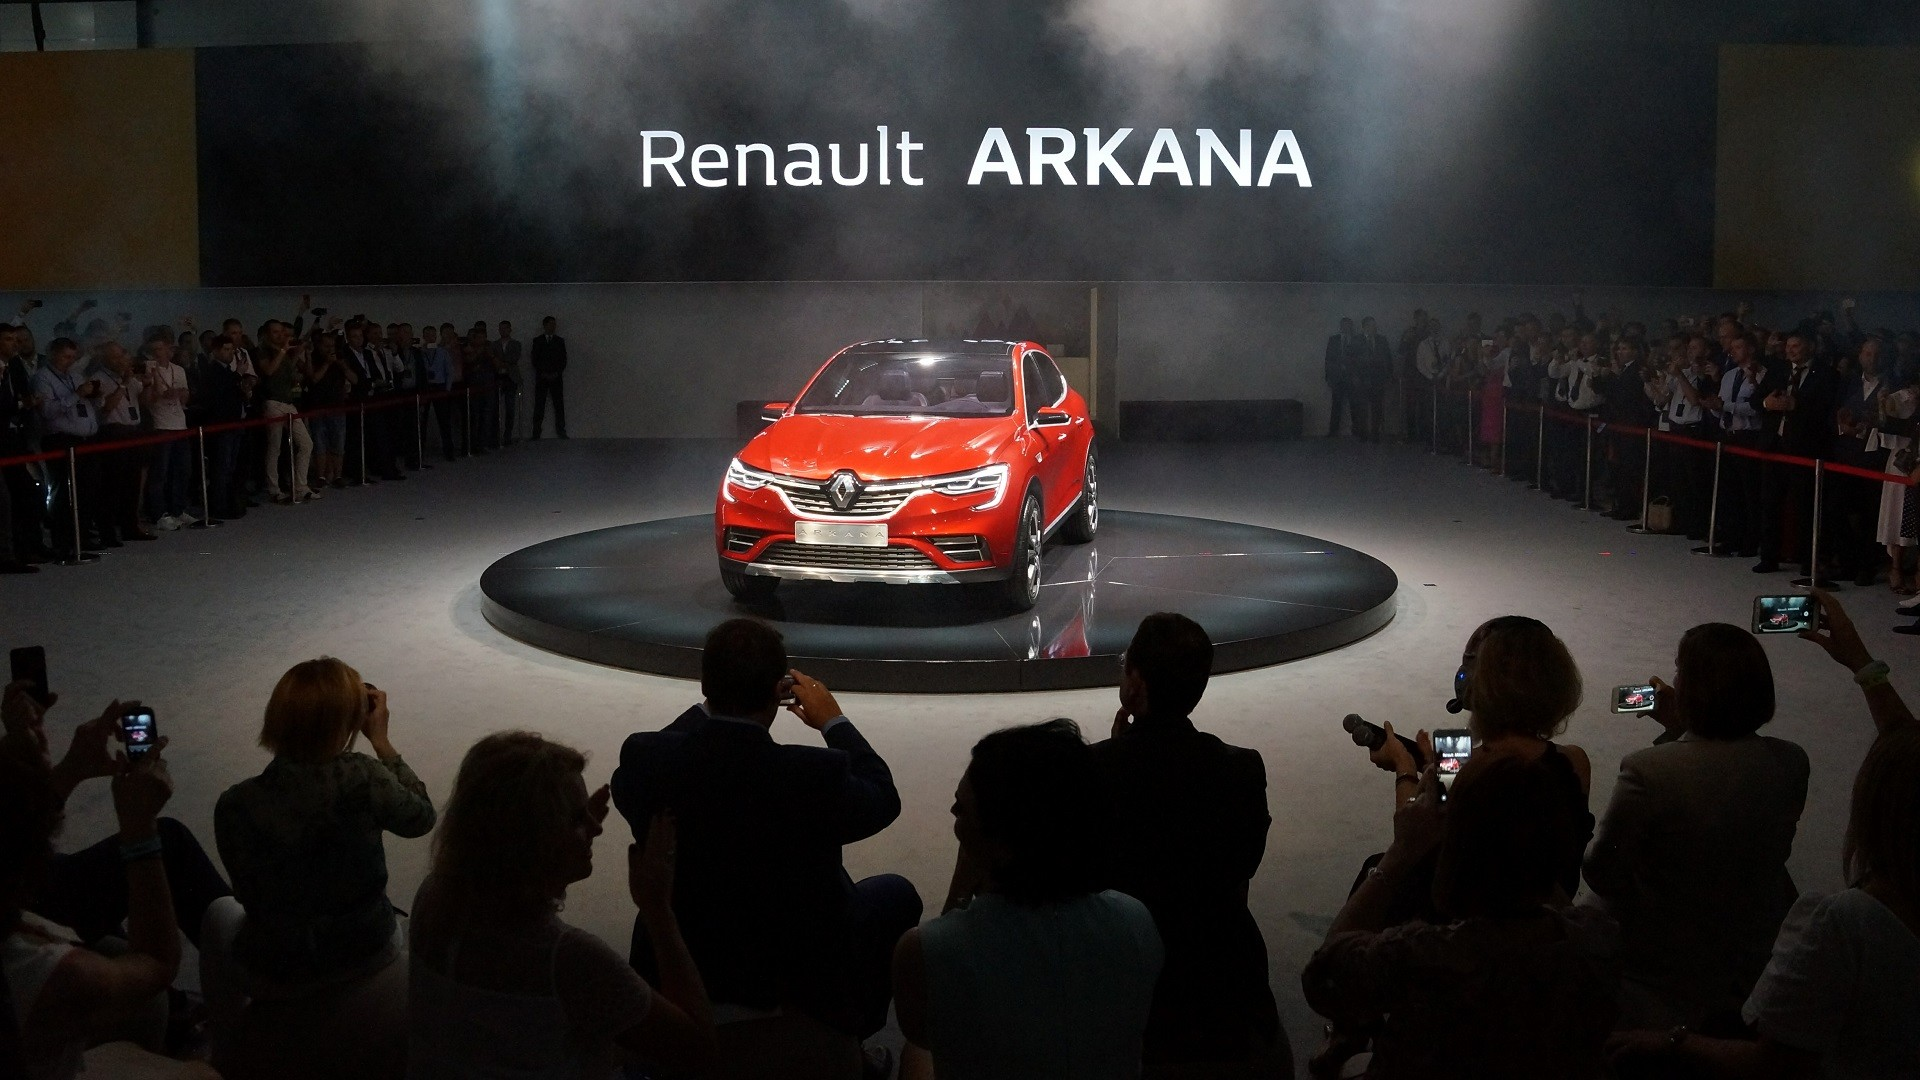 Le Renault Arkana exposé au Salon automobile international de Moscou en août 2018